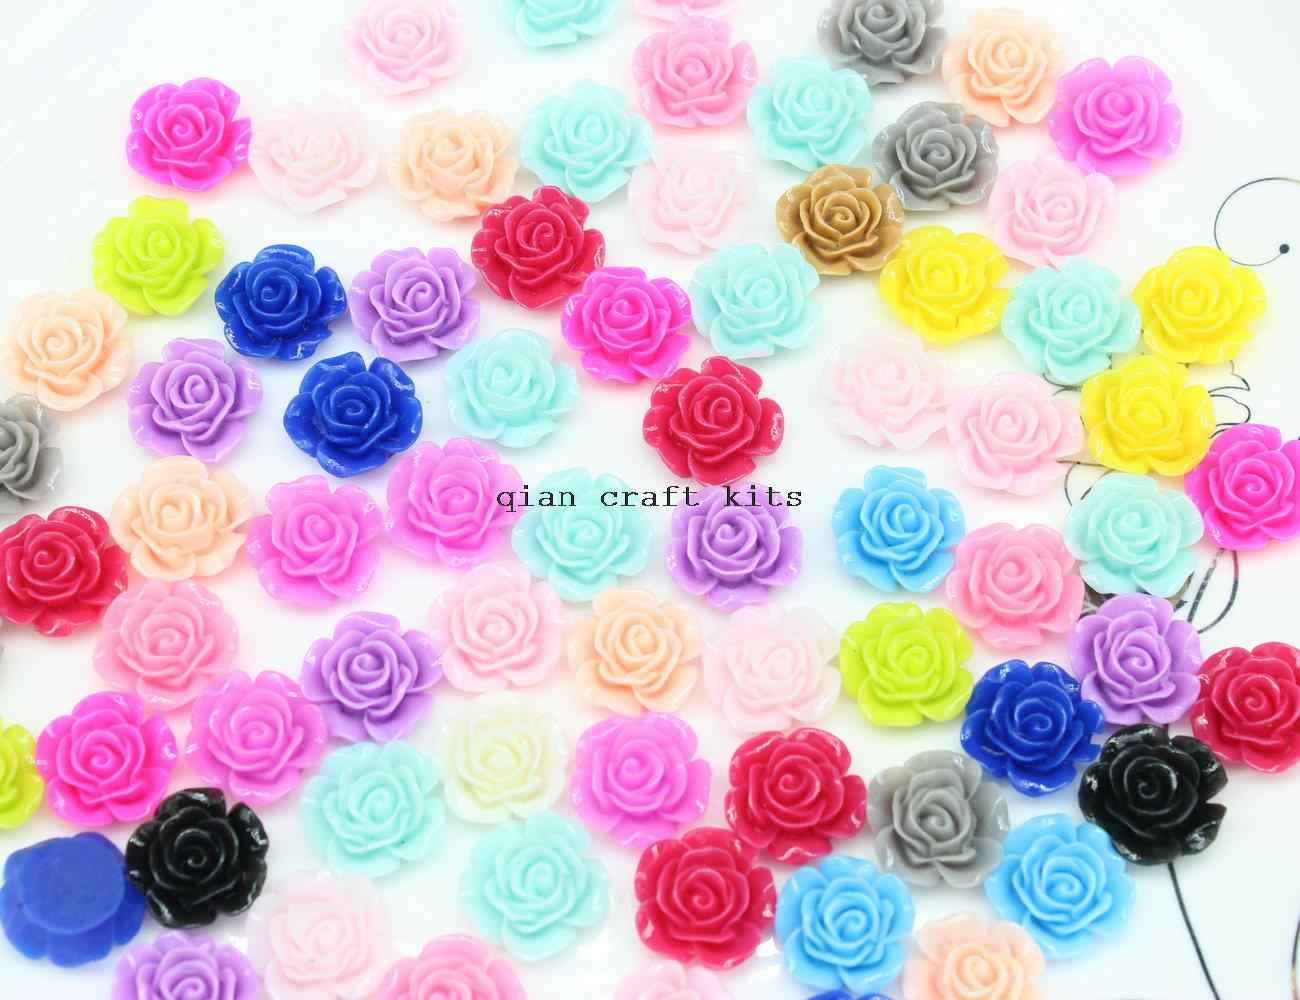 300pcs 15mm Resin Flower Embellishments - Jewelry Making Findings Cabochon Cameo ring, Earring ,pendant DIY hair bow